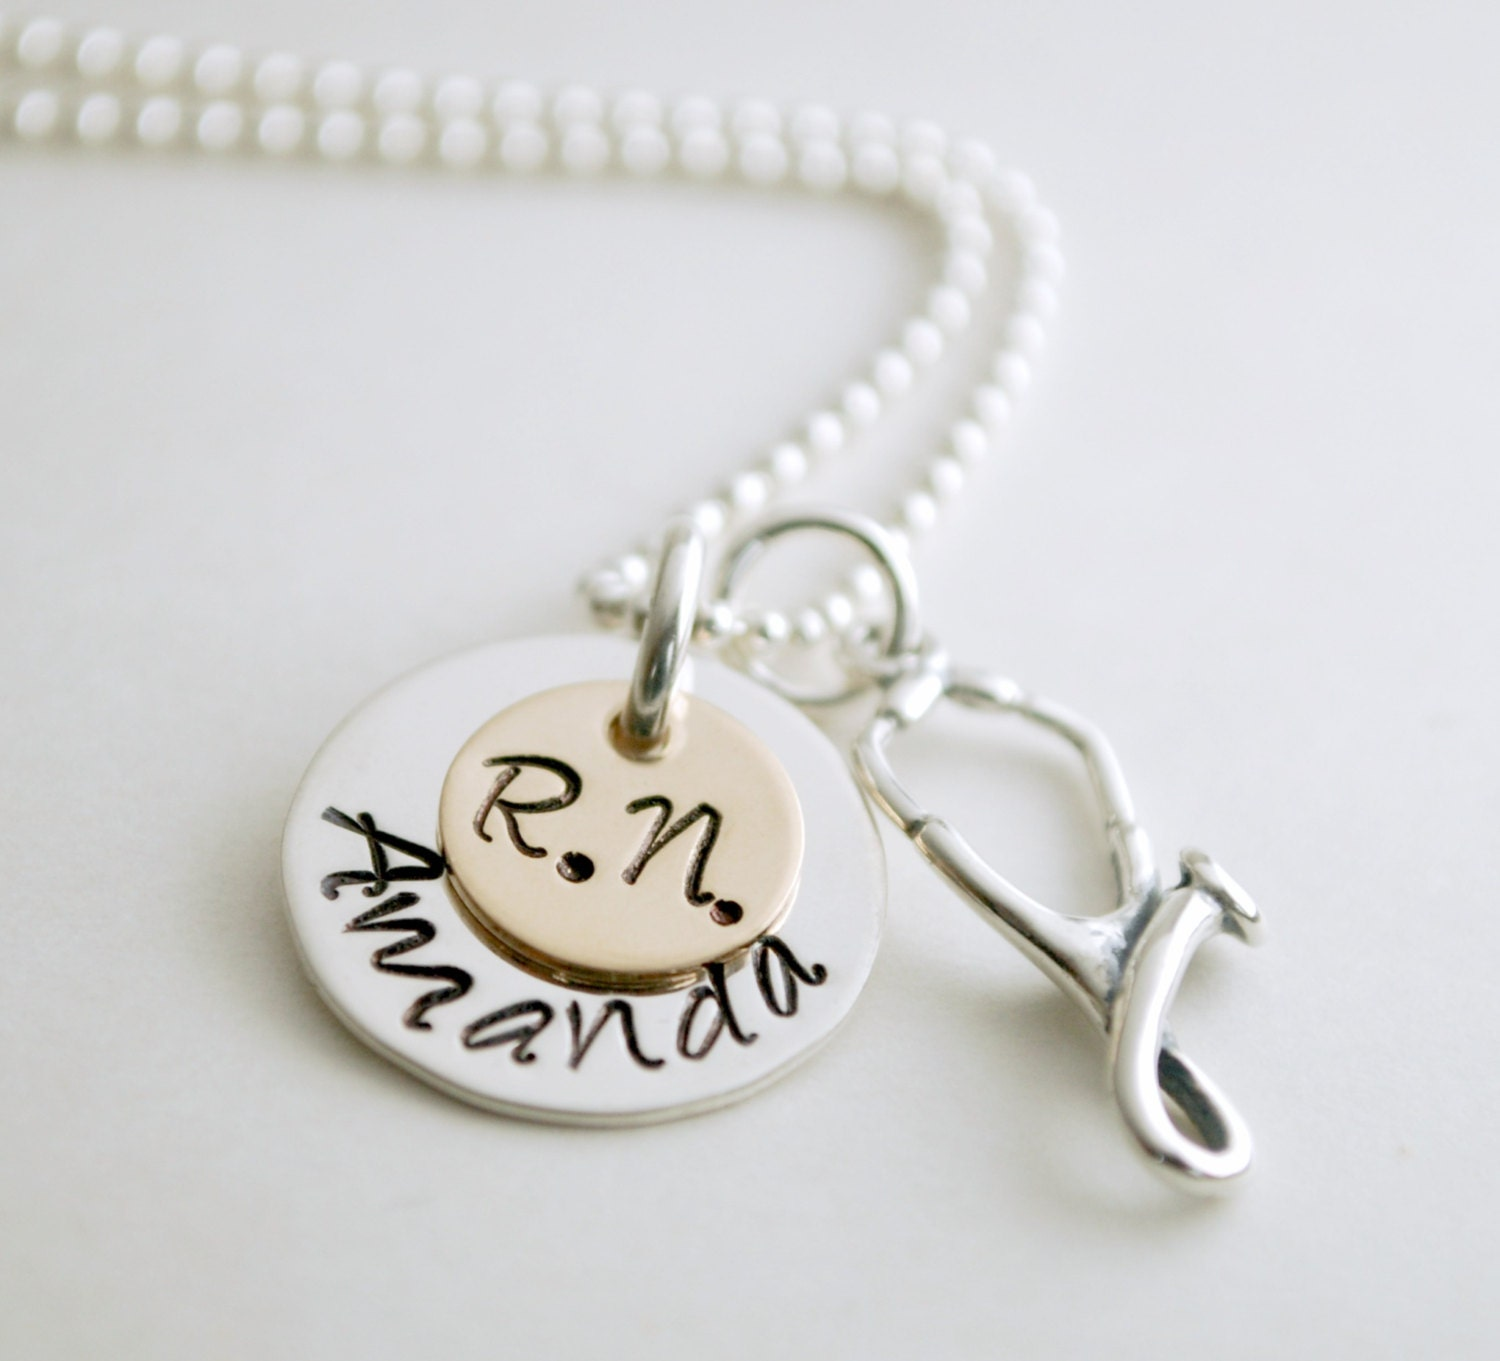 rn jewelry personalized for nurse graduation pinning